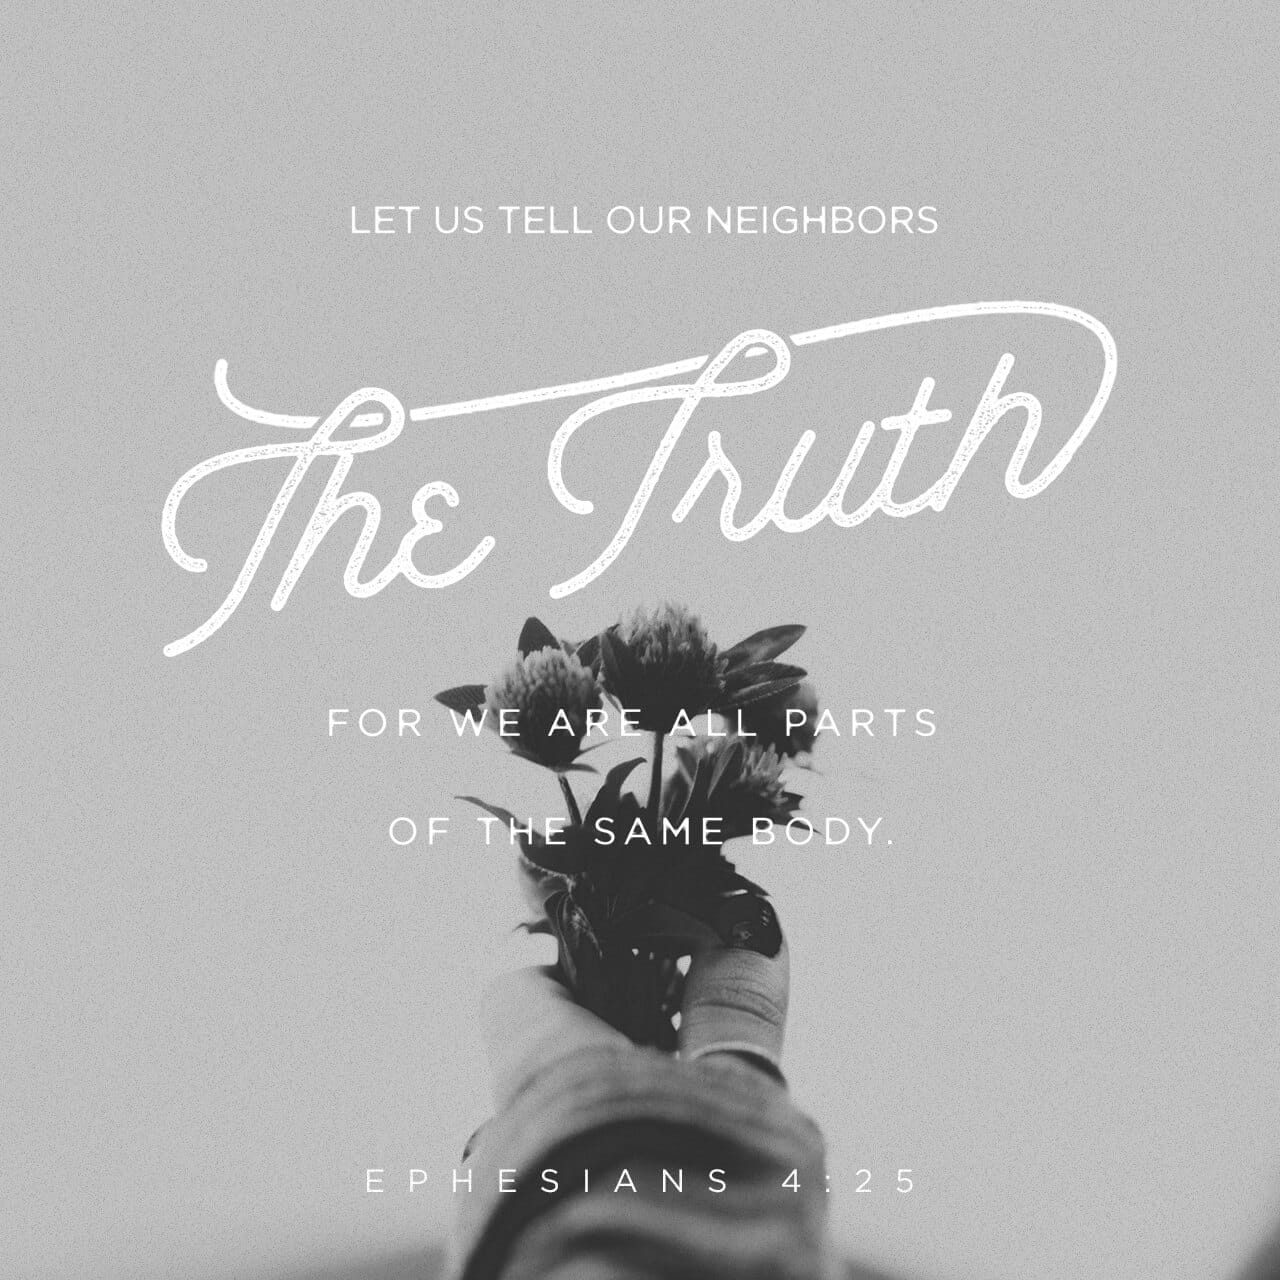 Ephesians 4:25 Wherefore, putting away falsehood, speak ye truth each one with his neighbor: for we are members one of another. | American Standard Version (ASV)